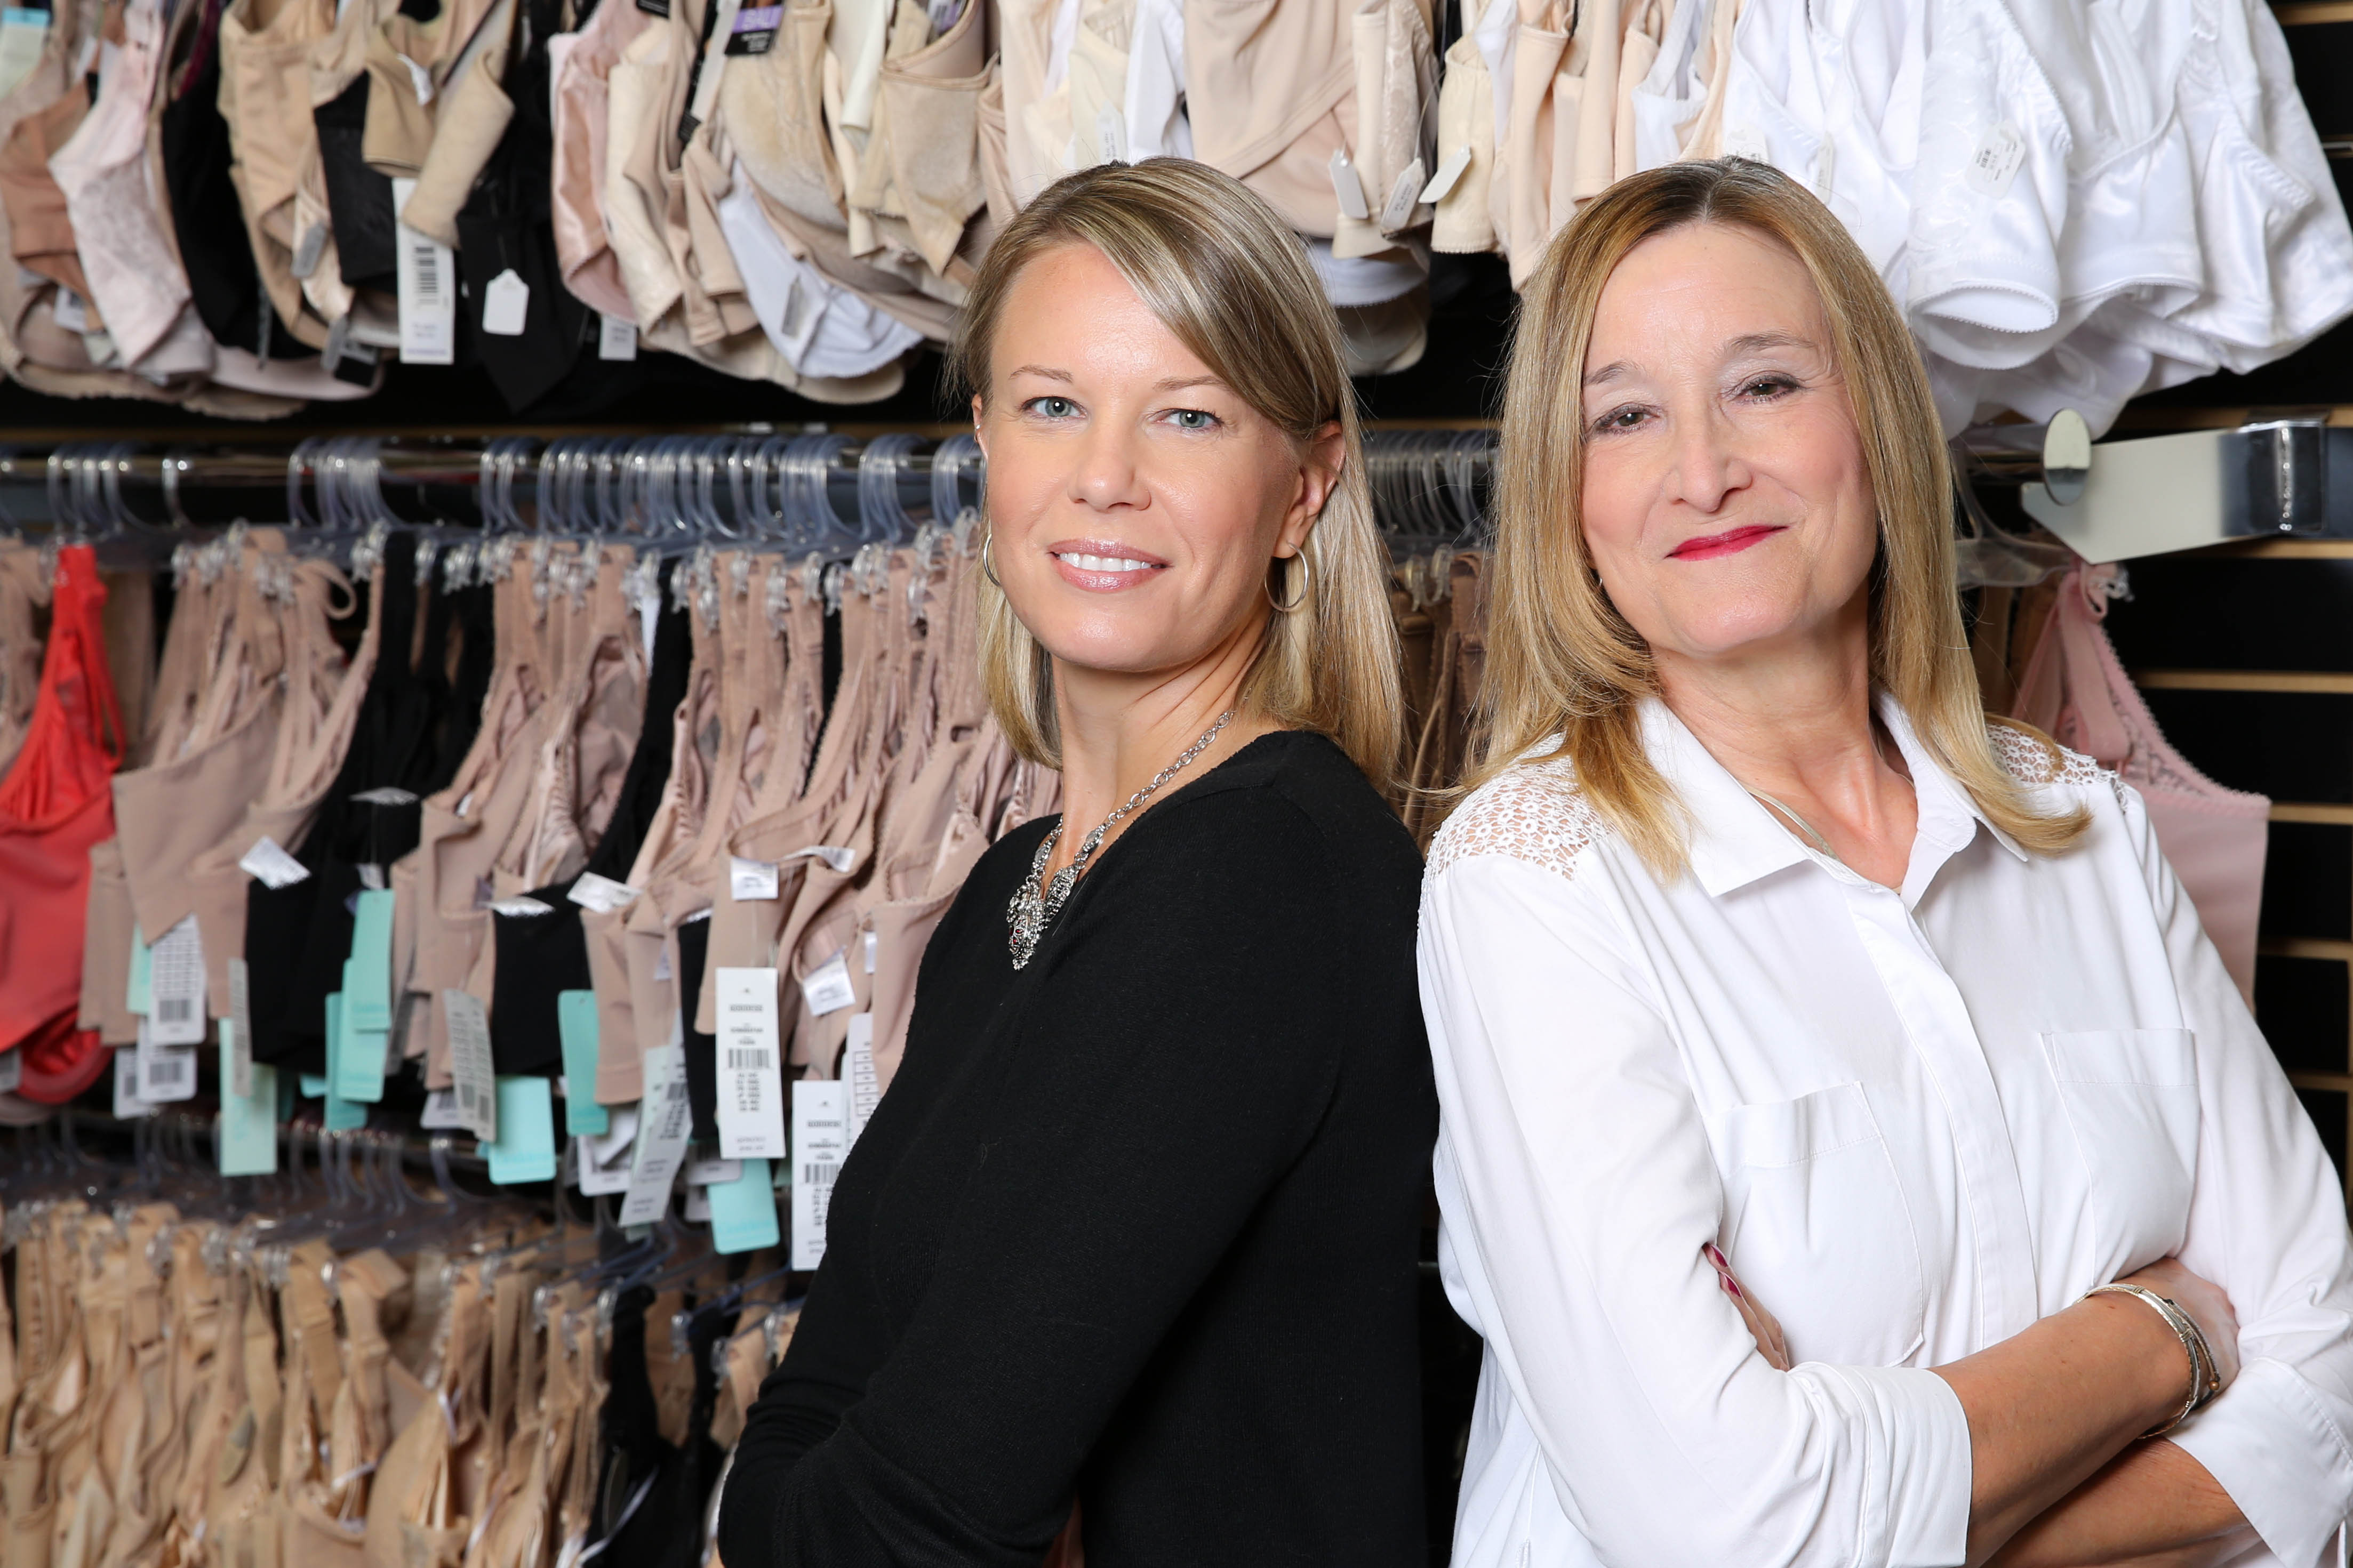 Front Room Underfashions Certified Mastectomy Fitters